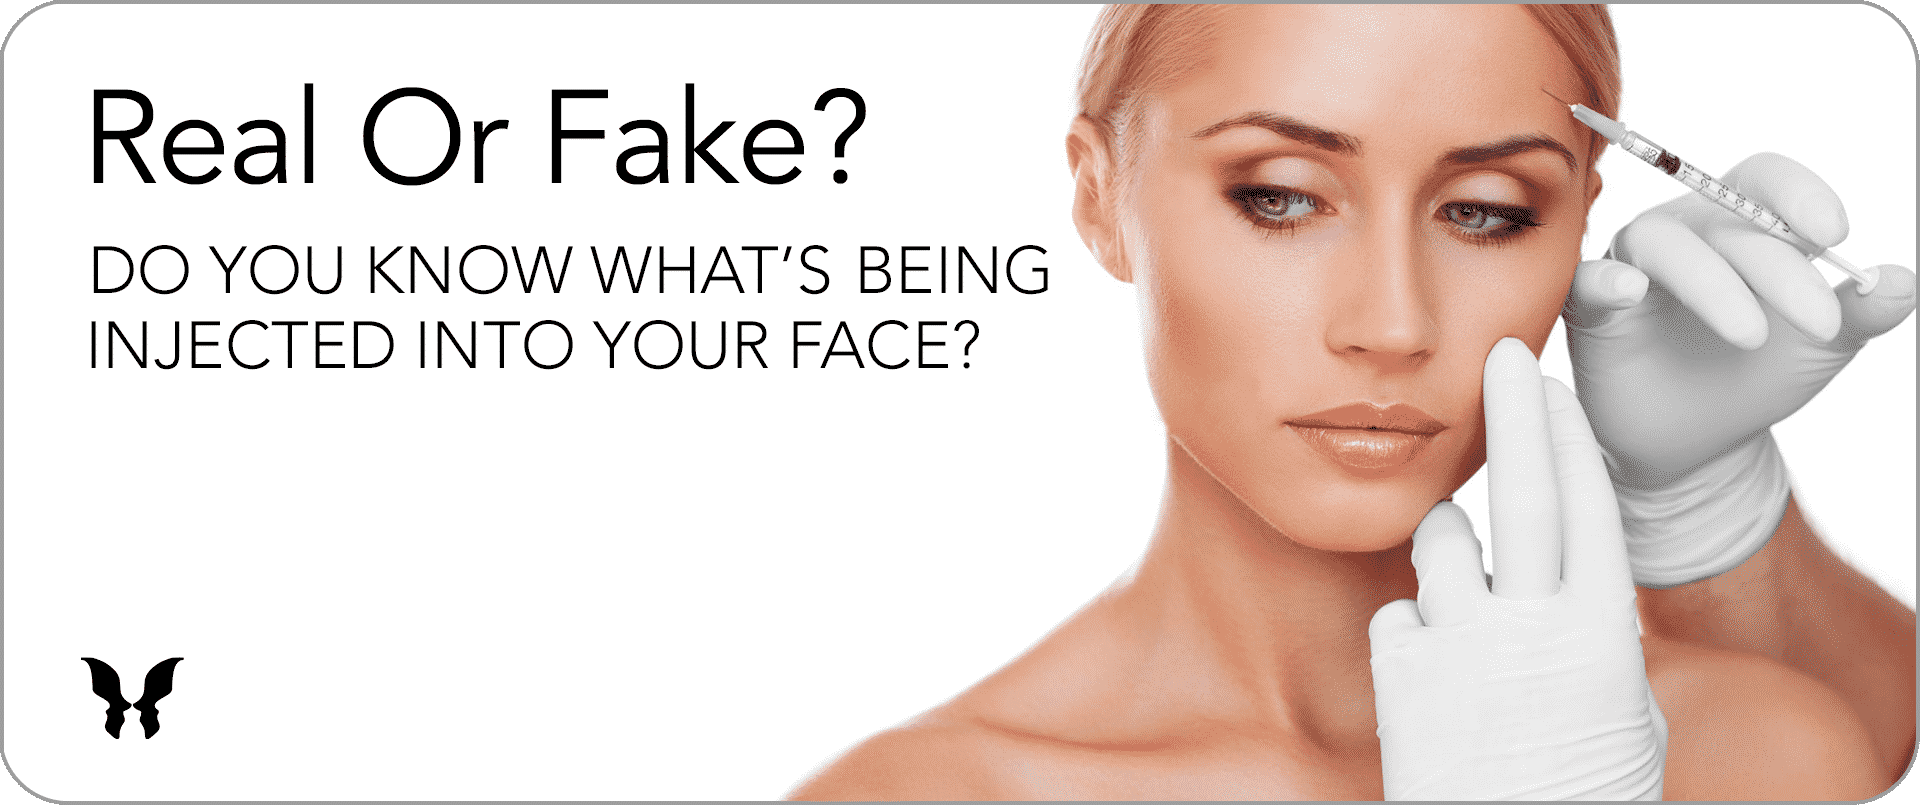 Real Or Fake? Do You Know What's Being Injected Into Your Face? 52a 020917 Syringe Blog